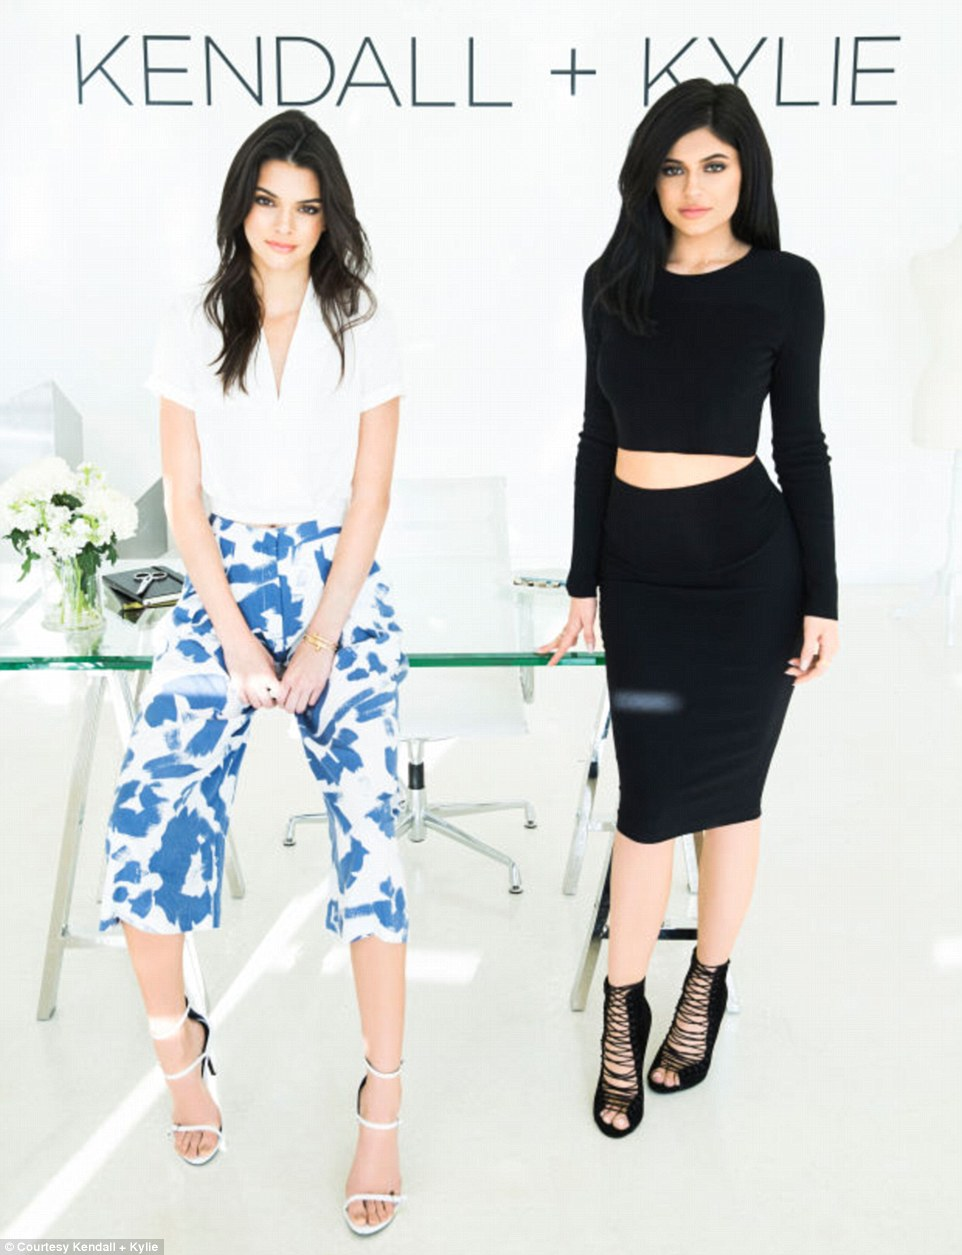 Photo: Kendall + Kylie Collection via Daily Mail UK